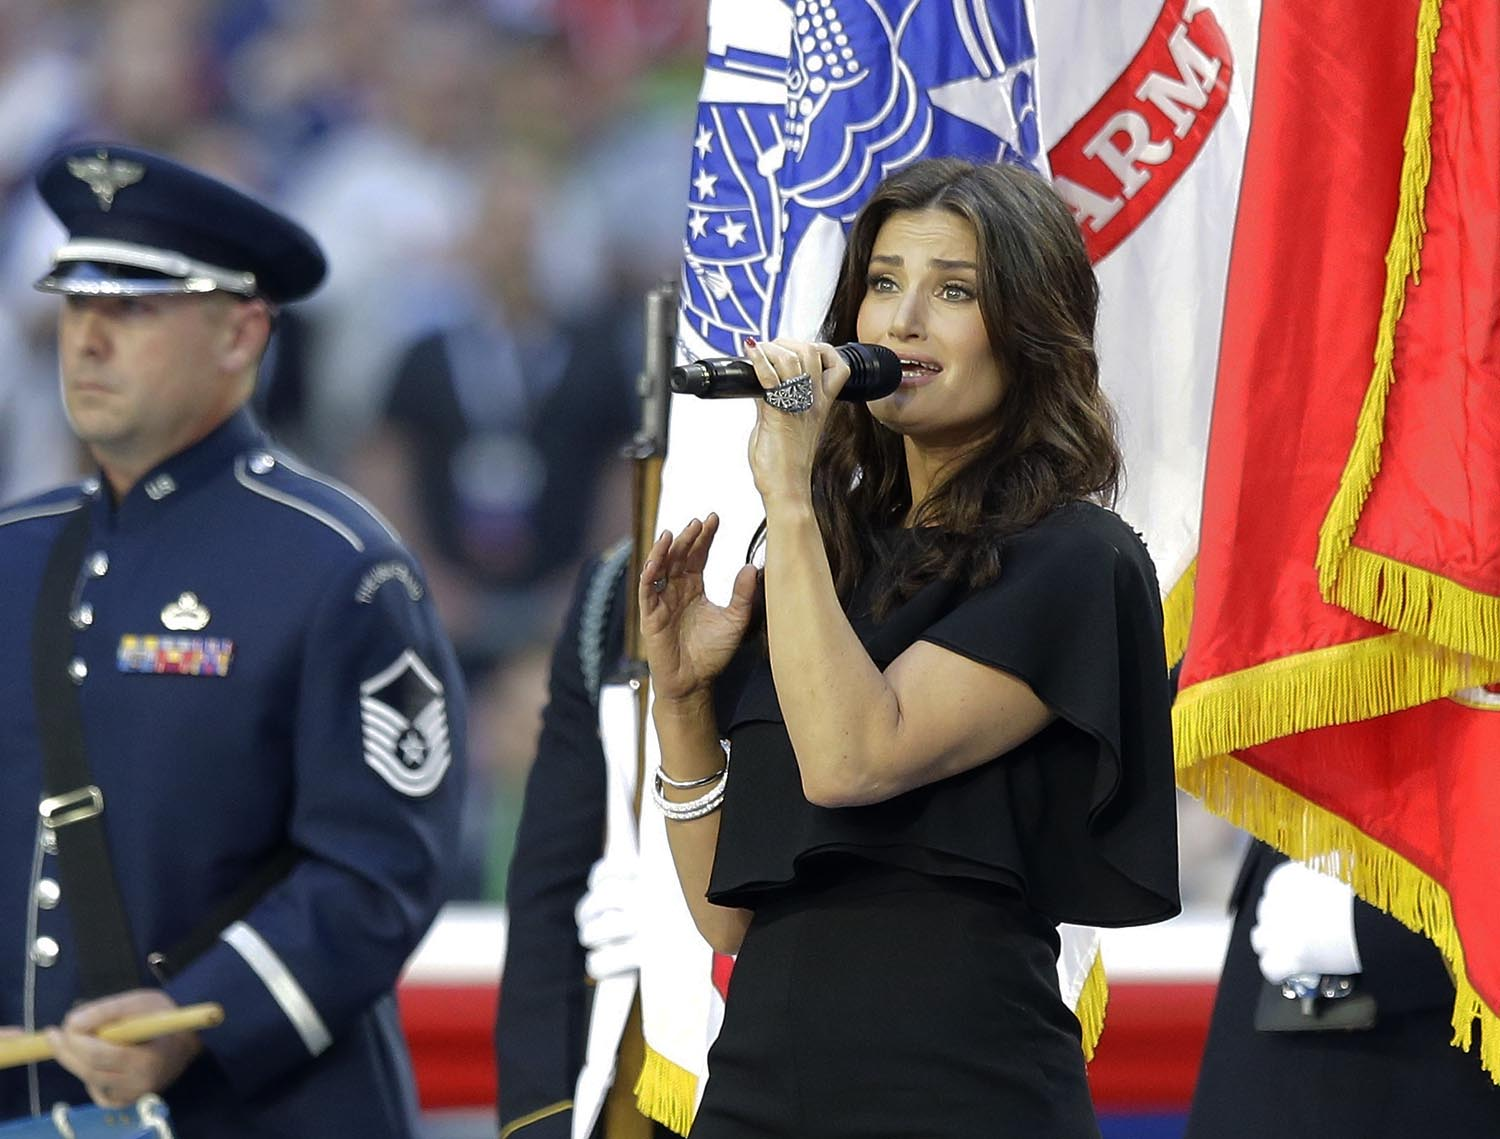 "<div class=""meta image-caption""><div class=""origin-logo origin-image ap""><span>AP</span></div><span class=""caption-text"">2015: Idina Menzel sings the national anthem before the NFL Super Bowl XLIX football game between the Seattle Seahawks and the New England Patriots on Feb. 1, 2015. (AP Photo/Michael Conroy)</span></div>"